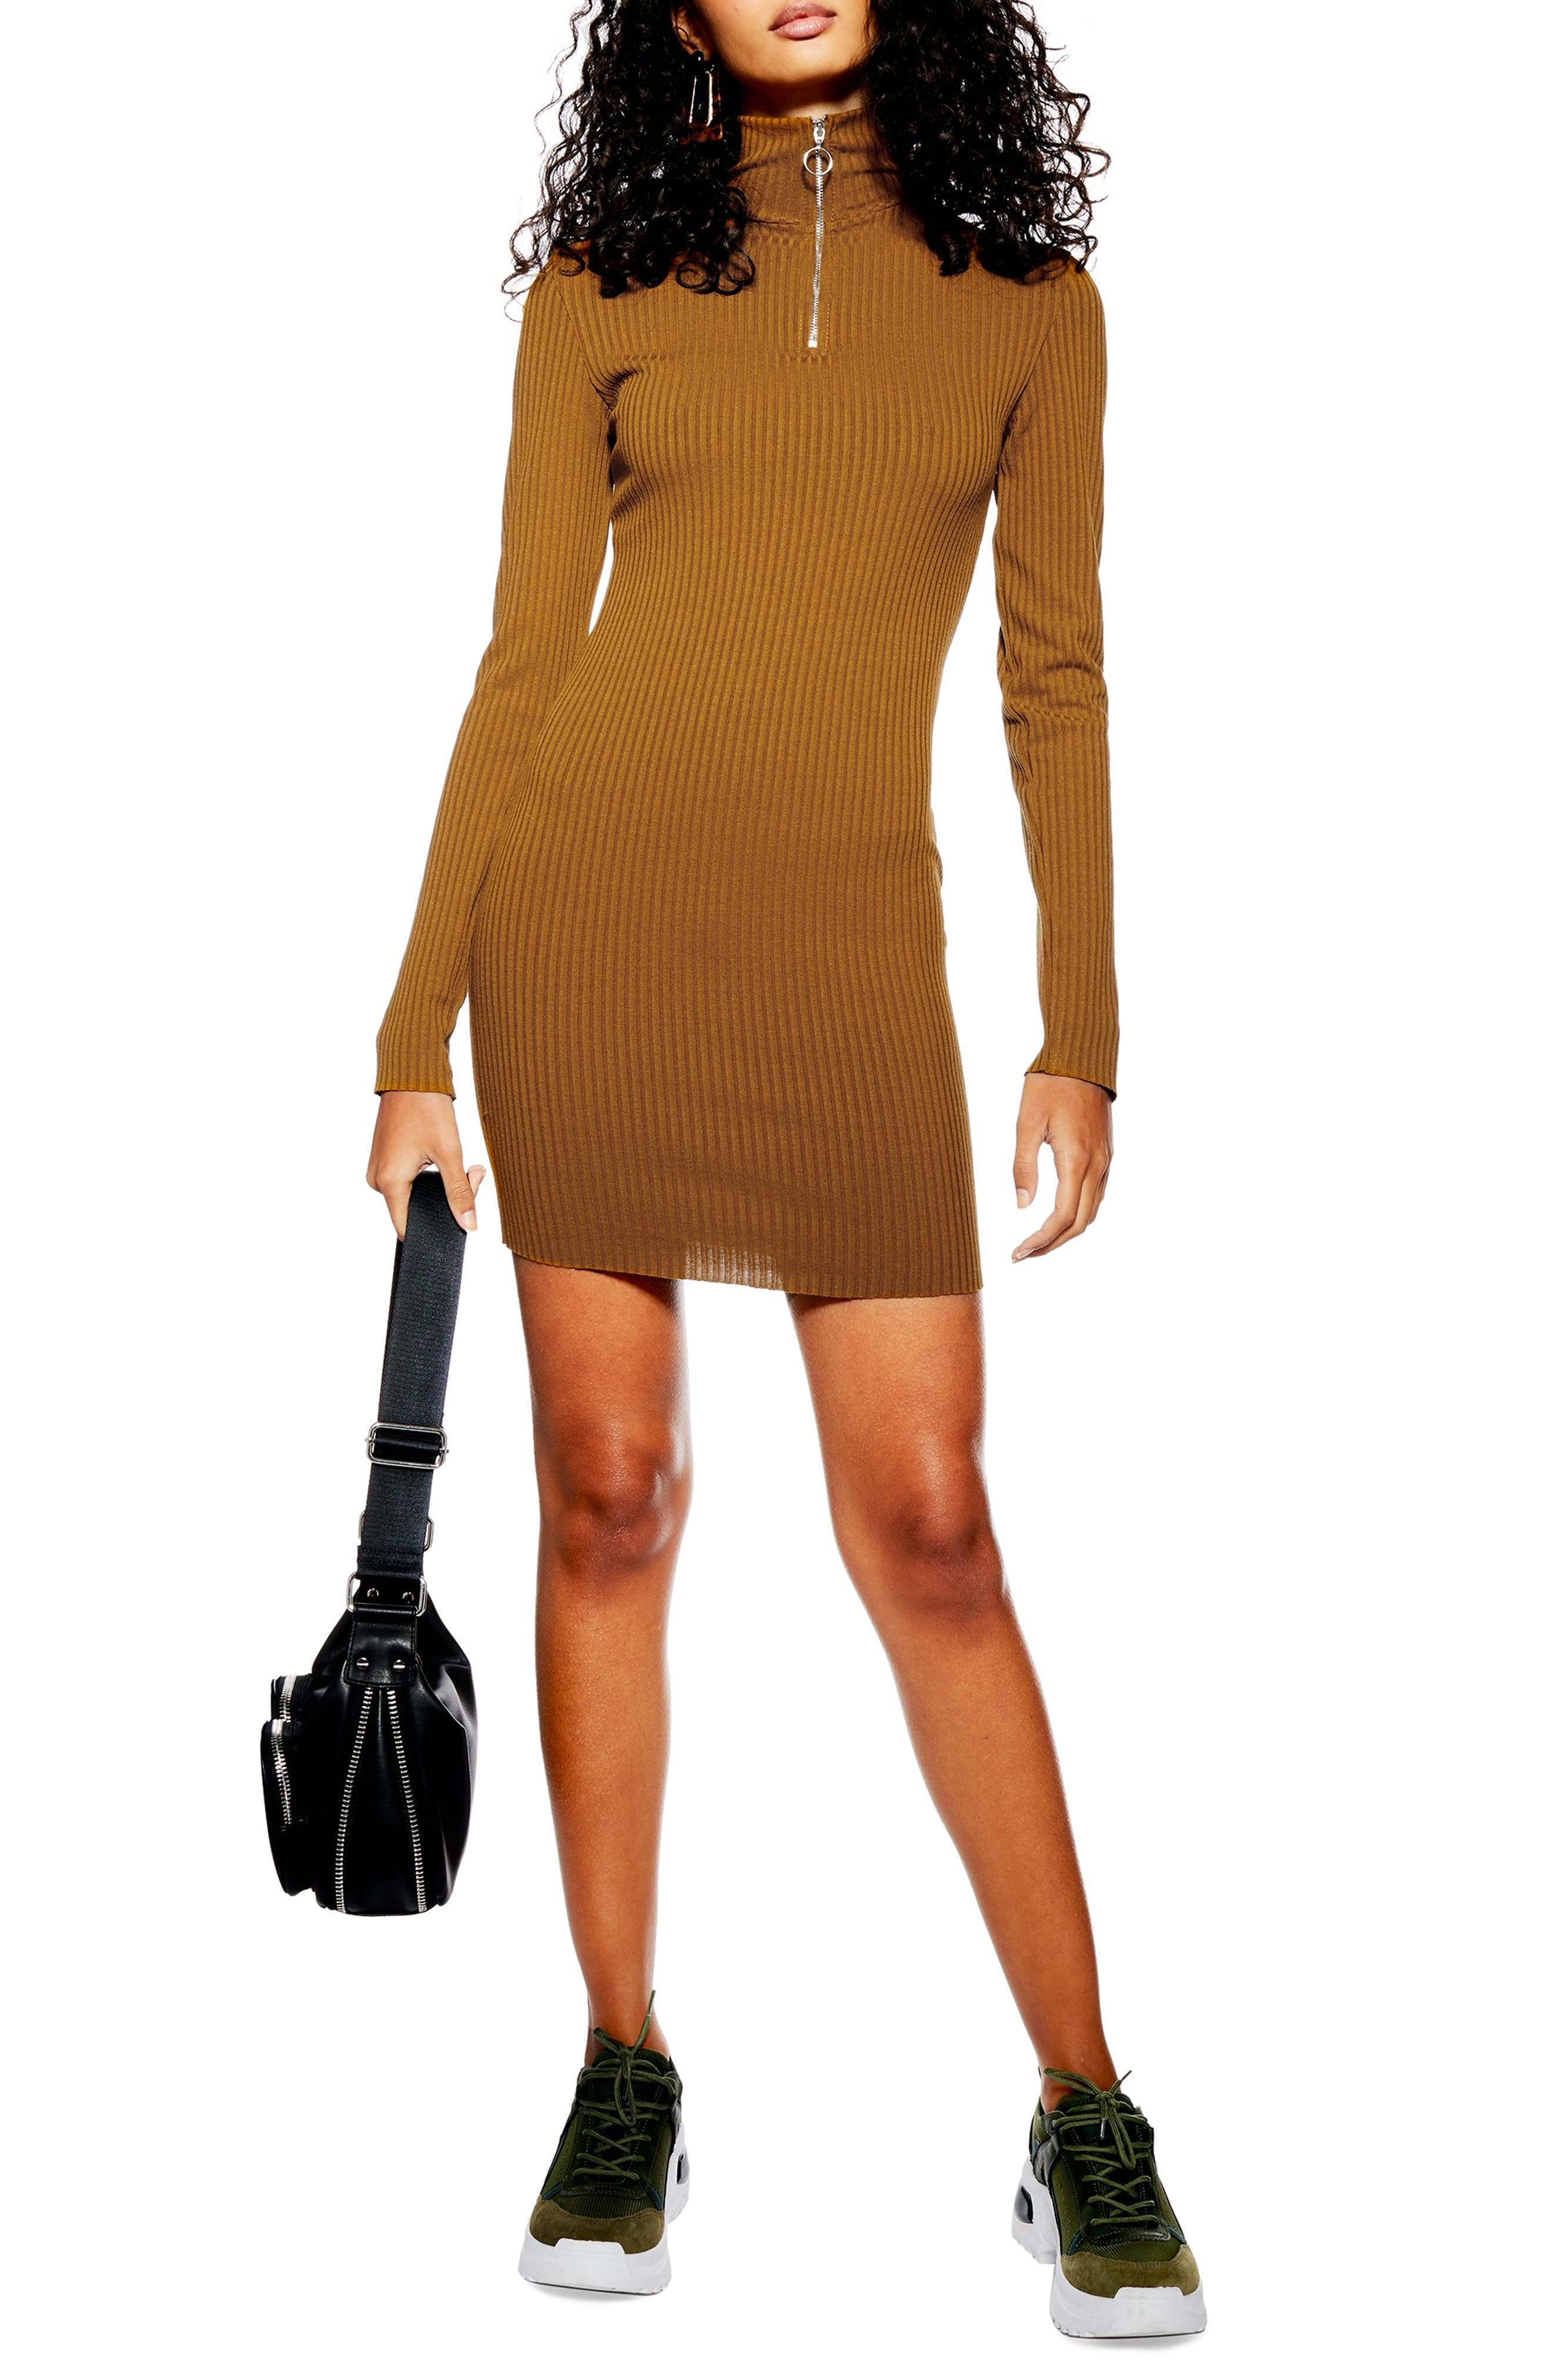 Topshop Ribbed Zip Jersey Dress, US (fits like 14) - Brown